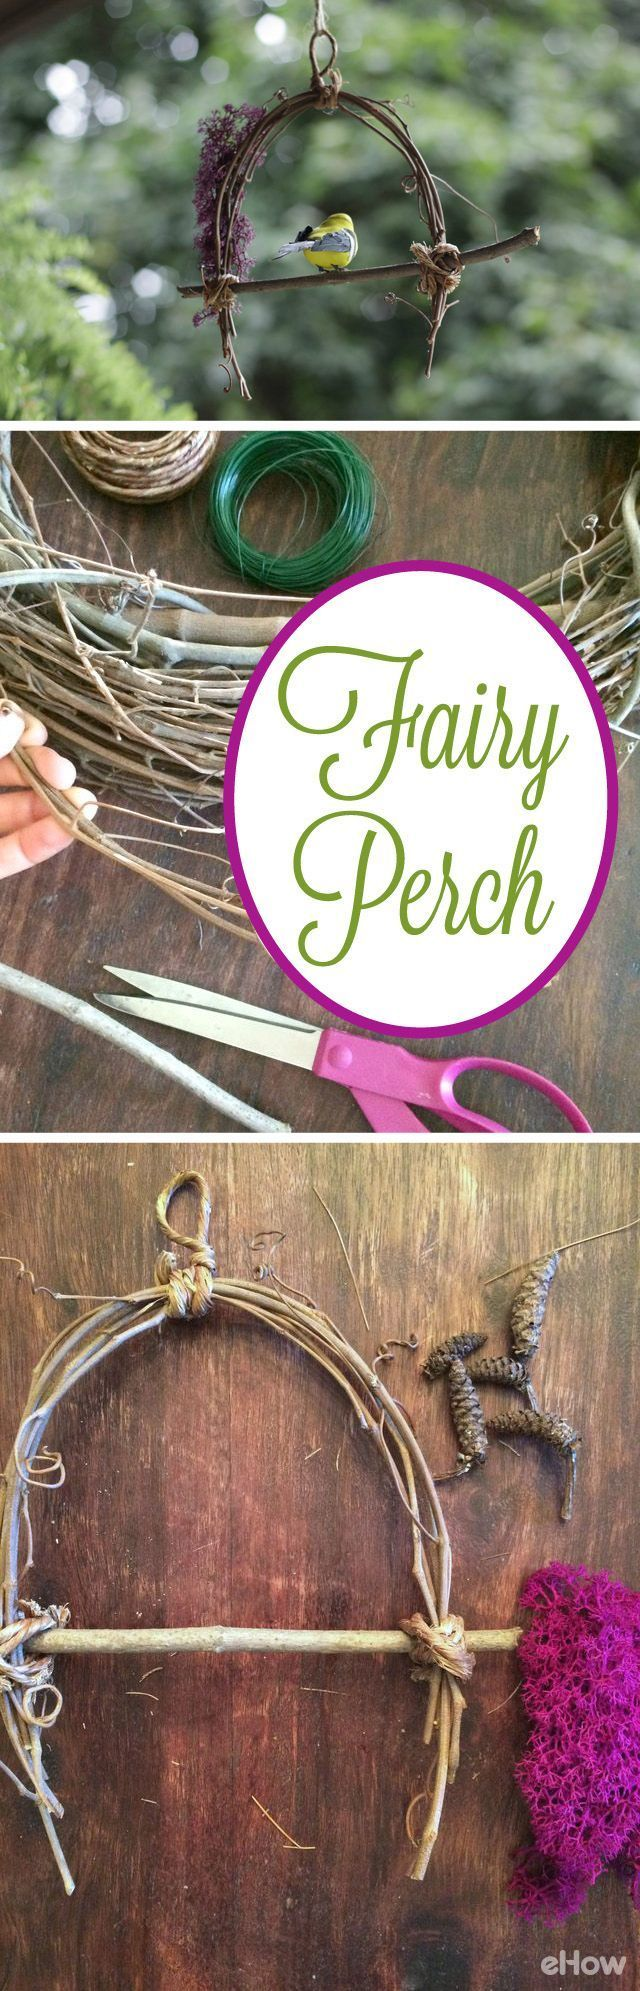 Give the birds a fabulous little perch in your backyard.  Made with all natural items, most of which you can find in your own yard. http://www.ehow.com/how_12342944_make-fairy-bird-perch.html?utm_source=pinterest.com&utm_medium=referral&utm_content=freestyle&utm_campaign=fanpage